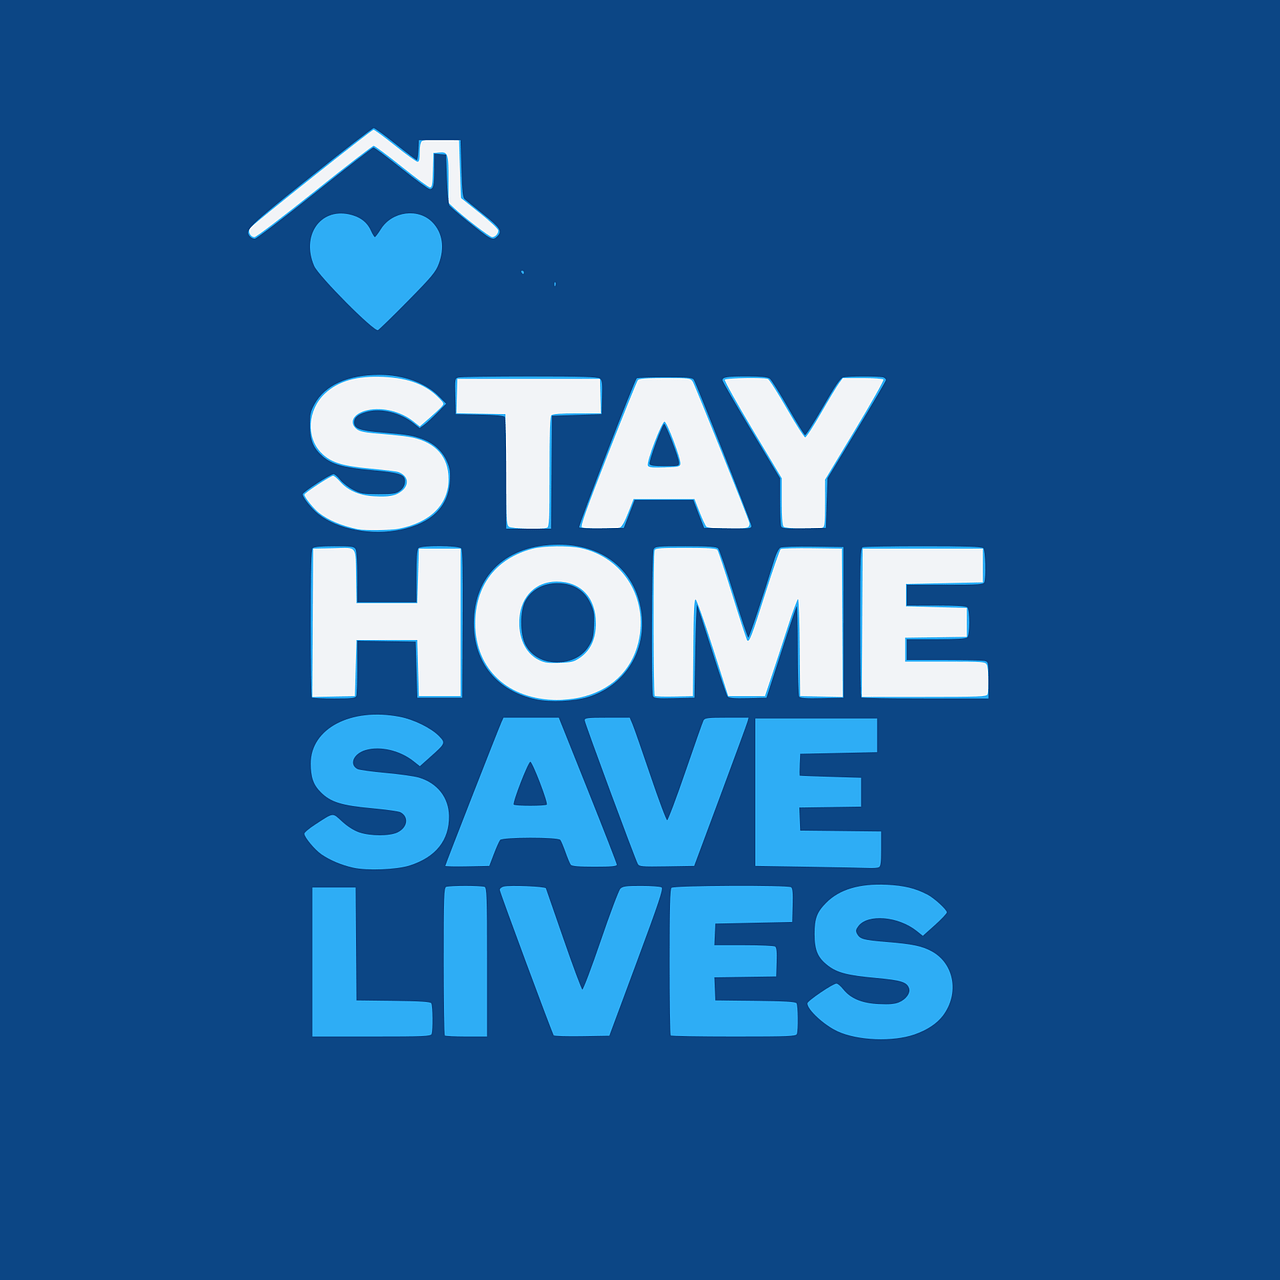 Stay Home Save Lives -Santosh Yoga Institute